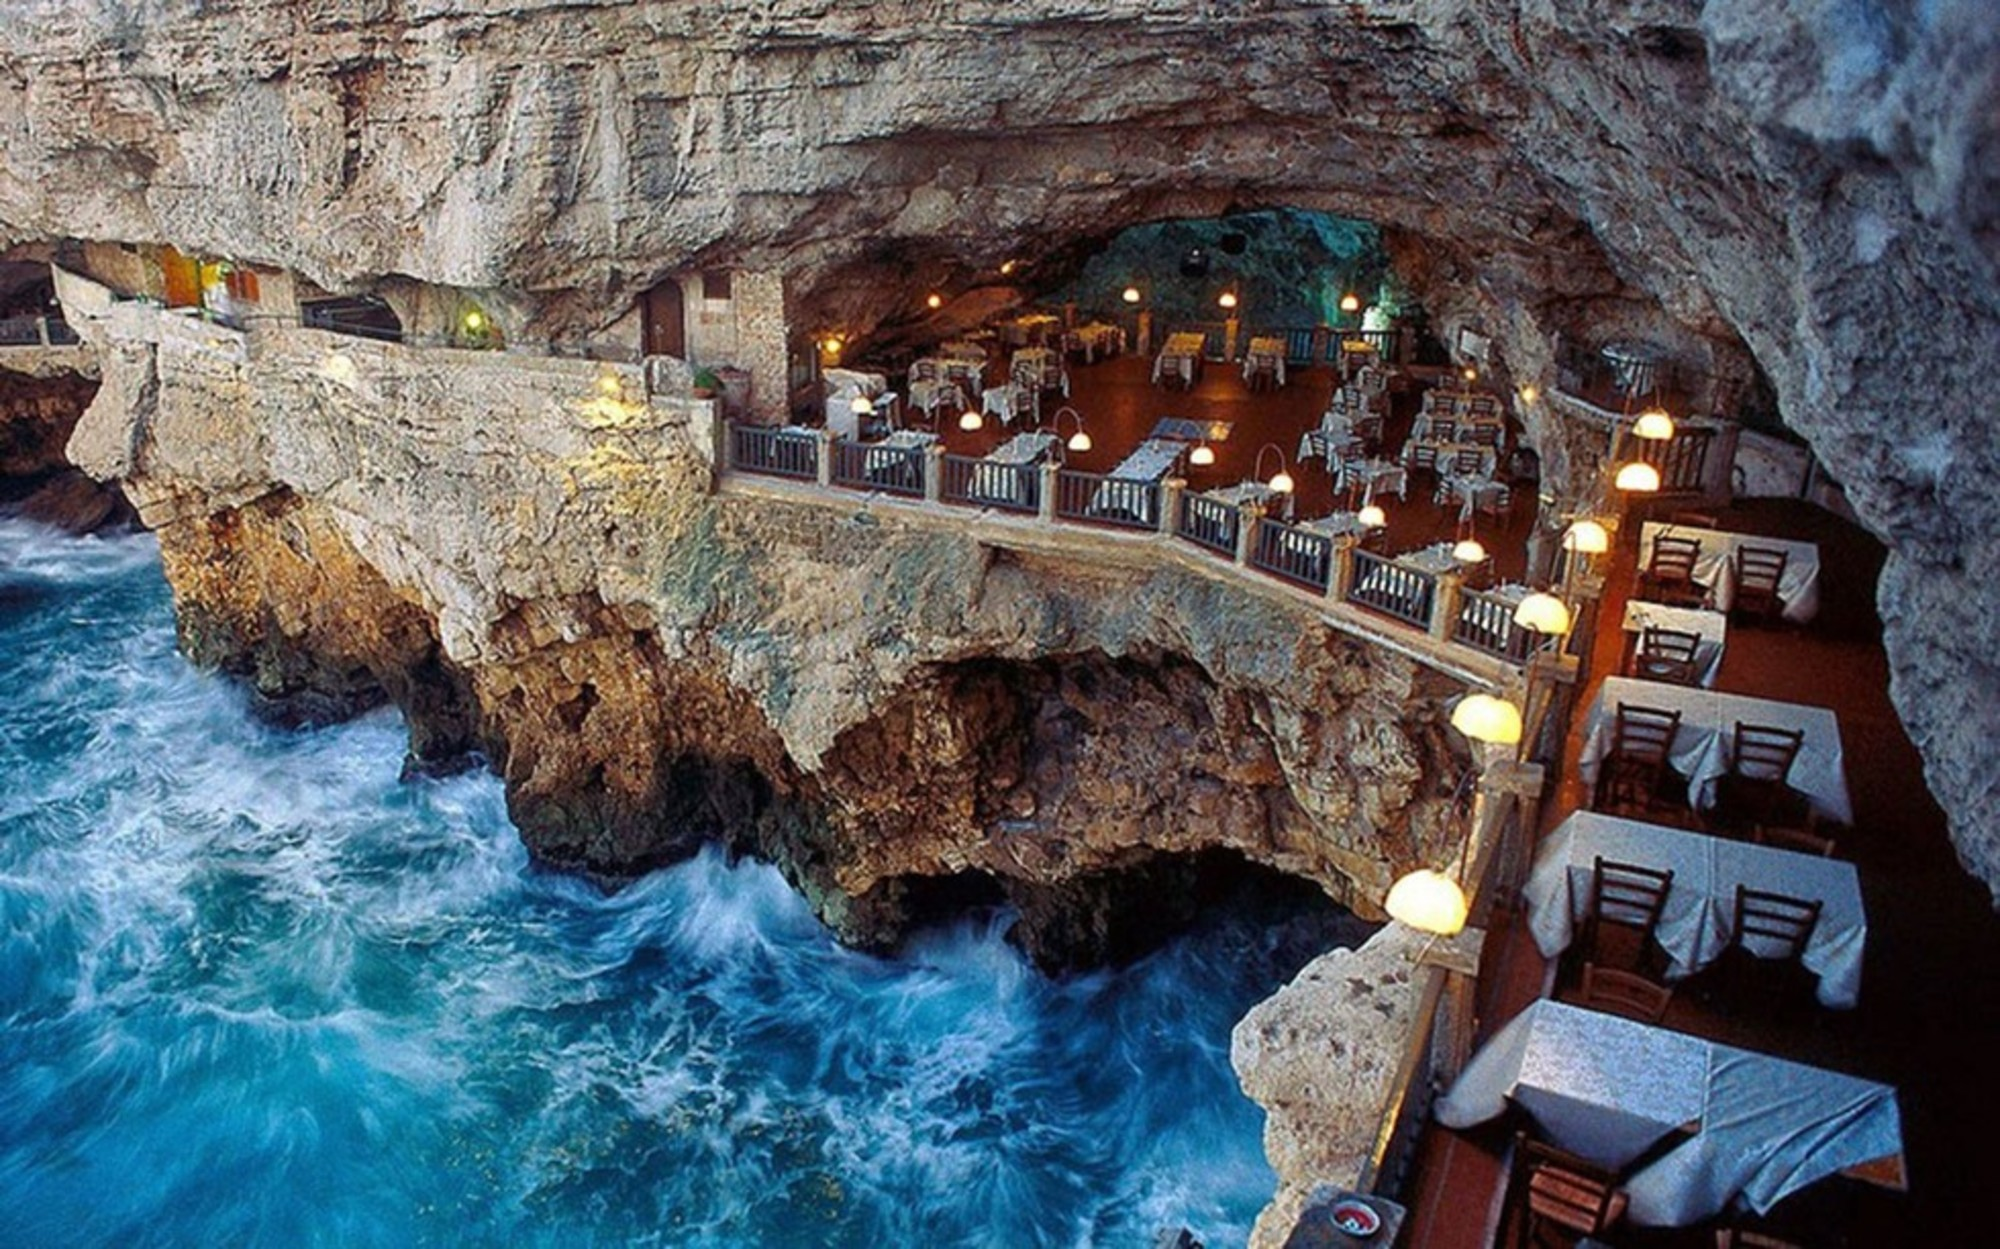 Luxury restaurants: an unforgettable experience inside a cave homes in Texas The most sophisticated homes in Texas Luxury restaurants an unforgettable experience inside a cave homes in Texas The most sophisticated homes in Texas Luxury restaurants an unforgettable experience inside a cave